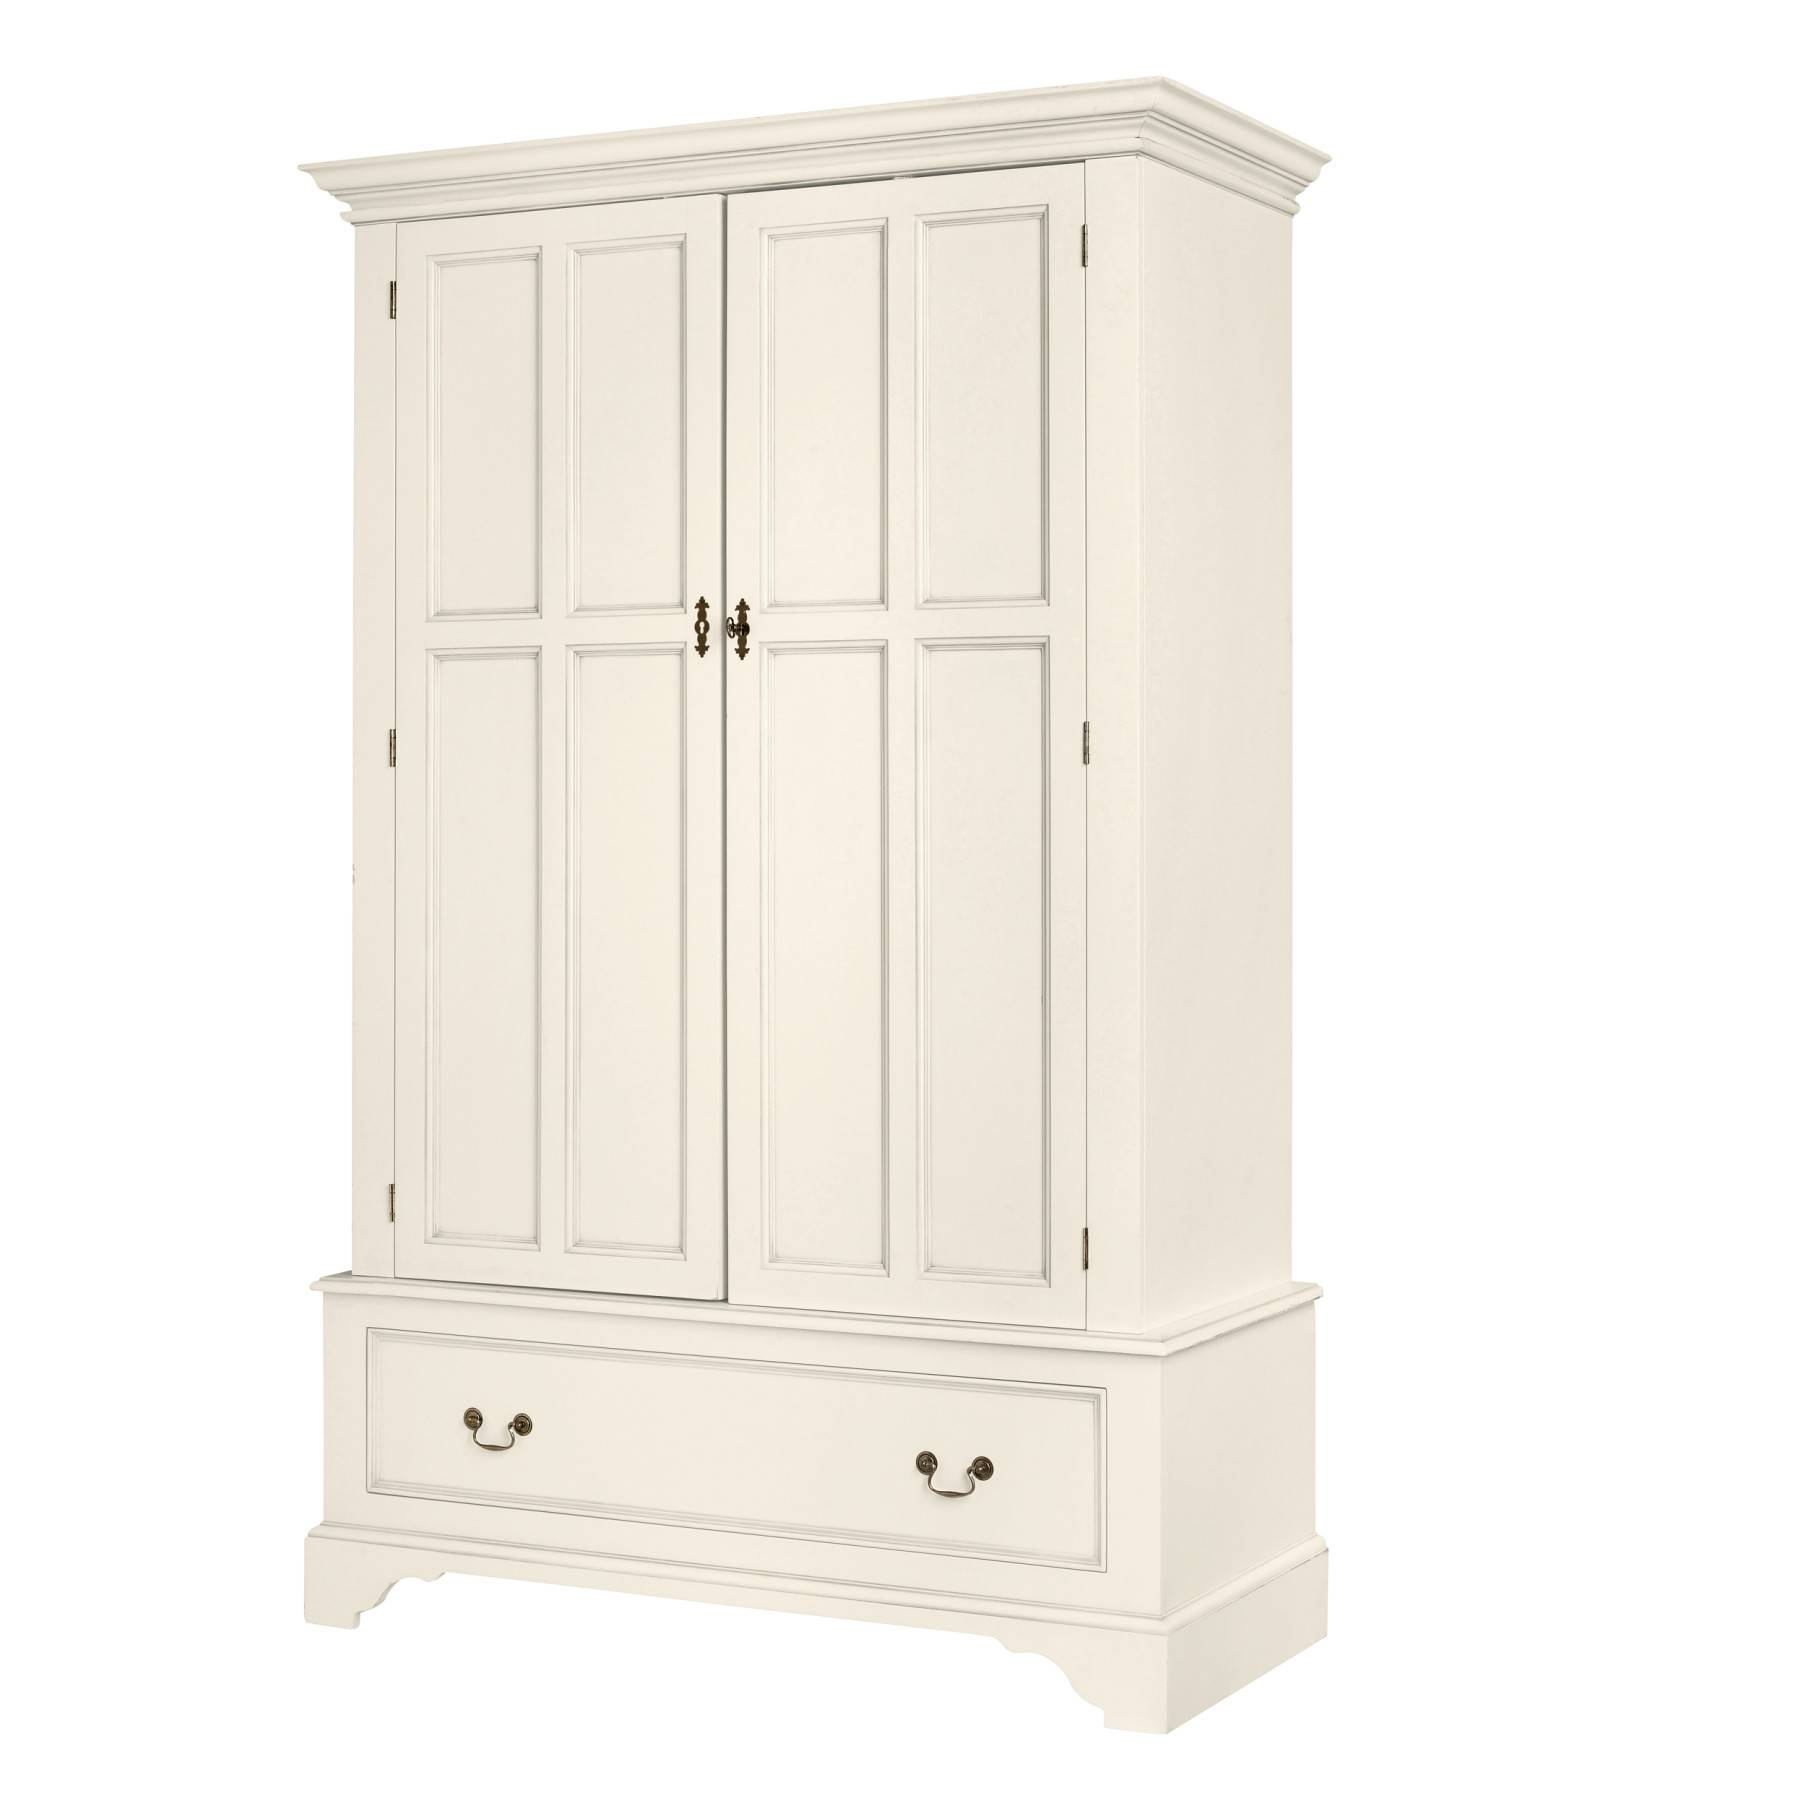 Made To Order Furniture - Clifton Ivory Range | Laura Ashley with regard to Ivory Wardrobes (Image 11 of 15)